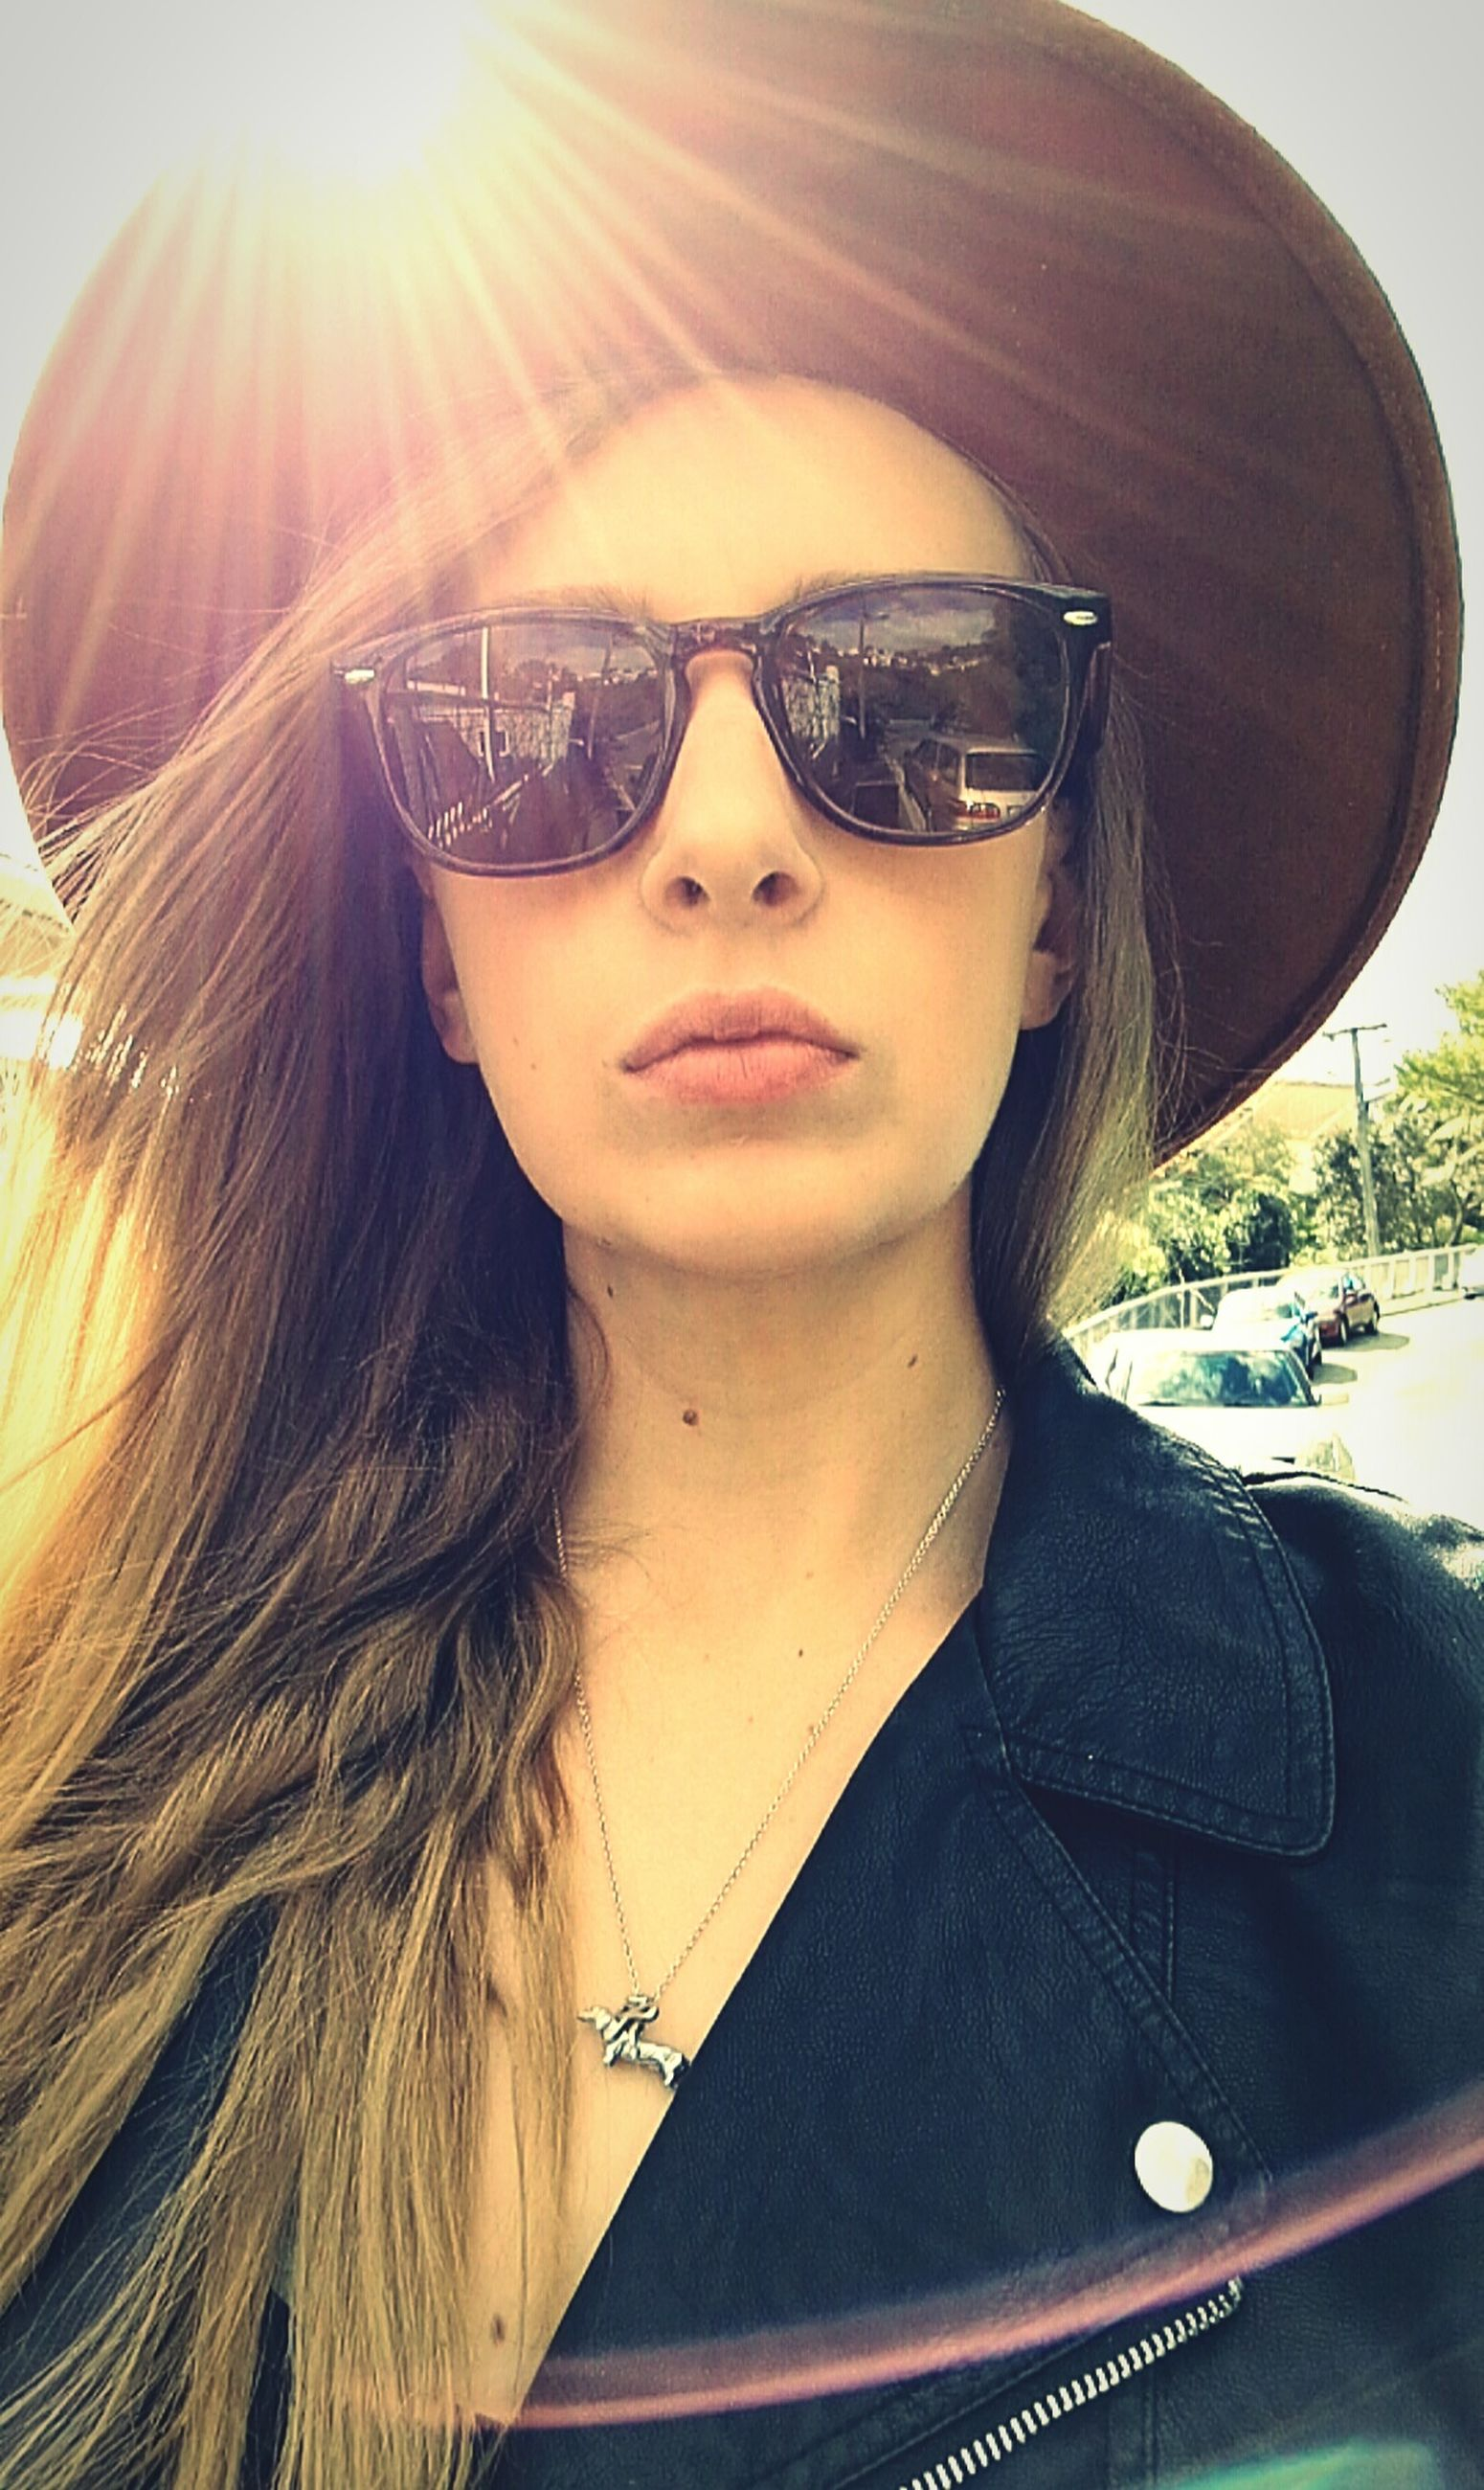 young adult, young women, long hair, front view, headshot, sunglasses, looking at camera, sunbeam, portrait, lifestyles, leisure activity, transportation, sunlight, beauty, person, sunny, mode of transport, vacations, puckering, casual clothing, outdoors, day, confidence, sun, summer